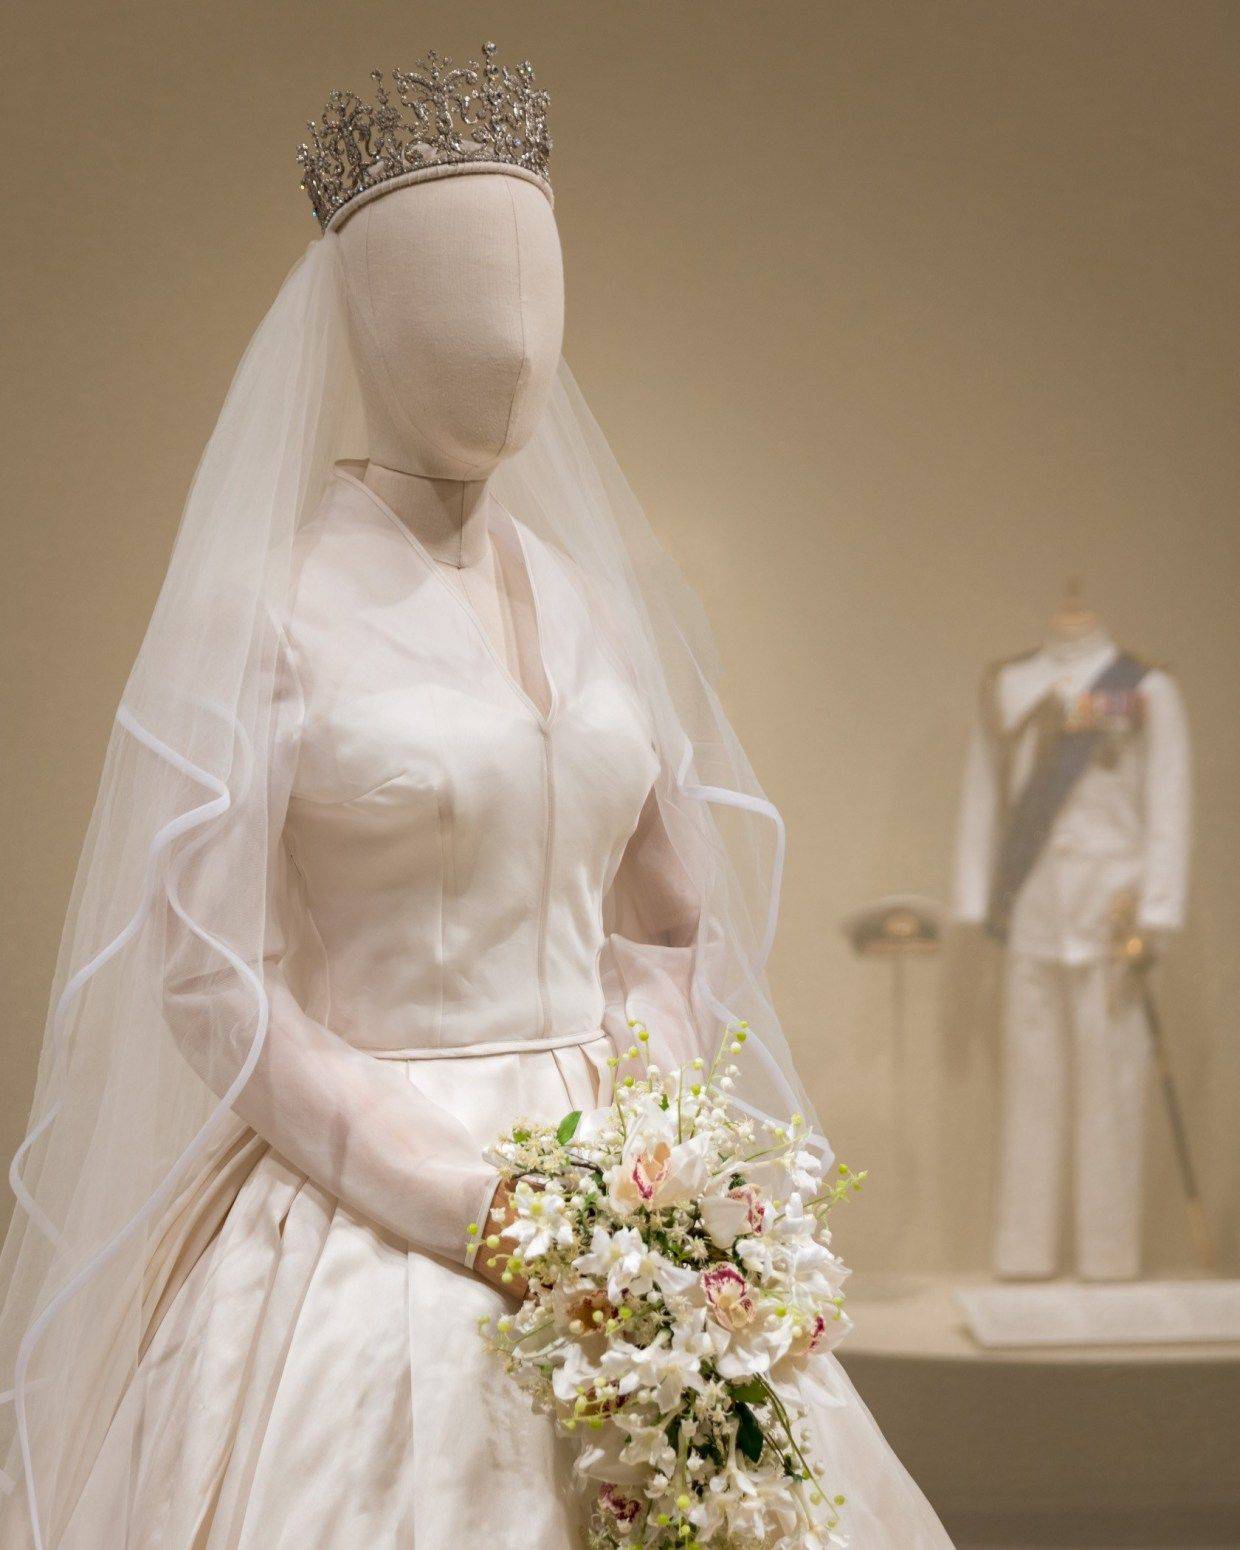 Costuming the Crown Exhibit opens at historic Winterthur